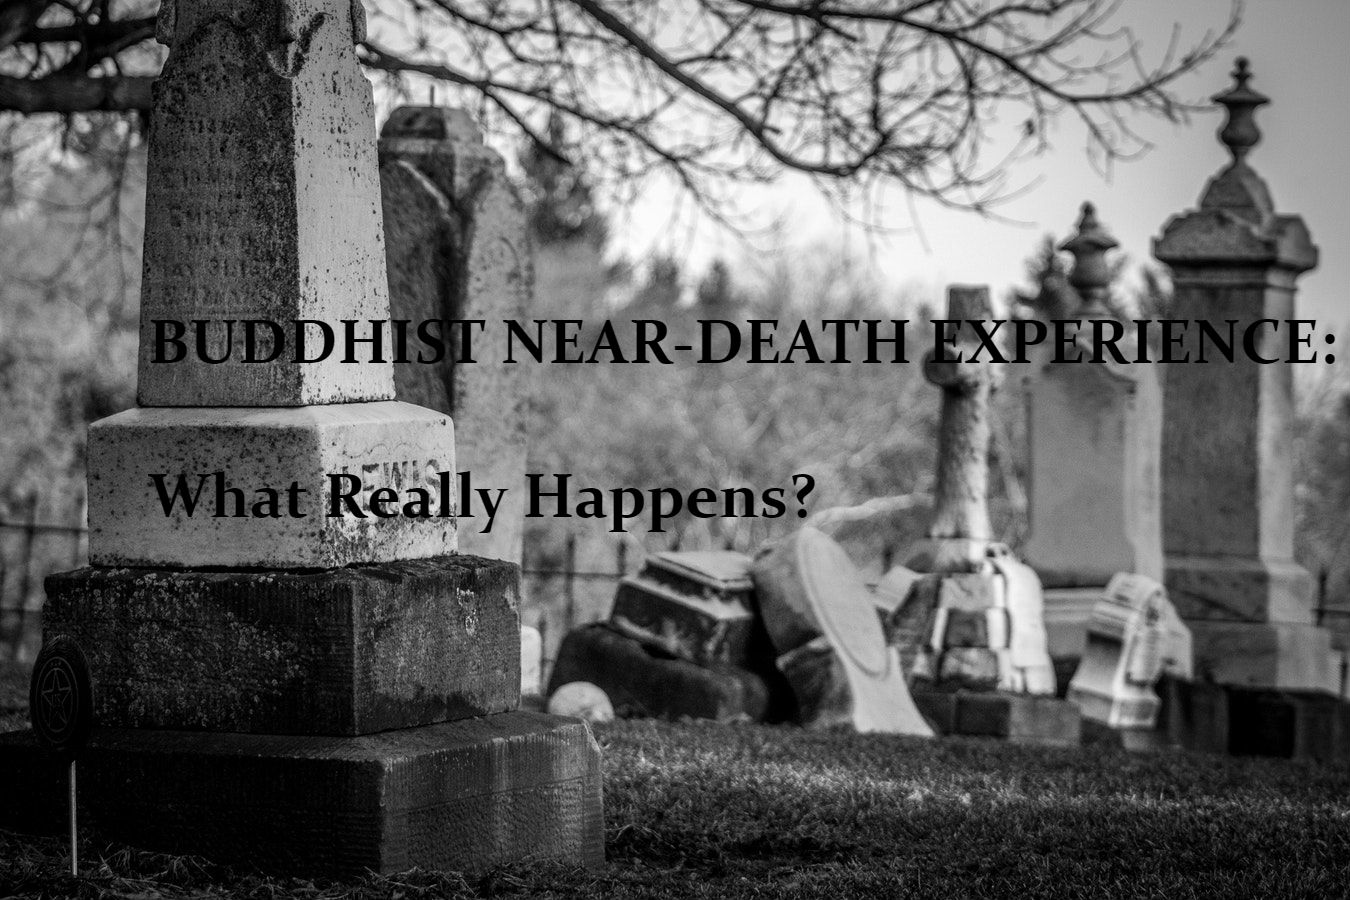 BUDDHIST NEAR-DEATH EXPERIENCE: What Really Happens?